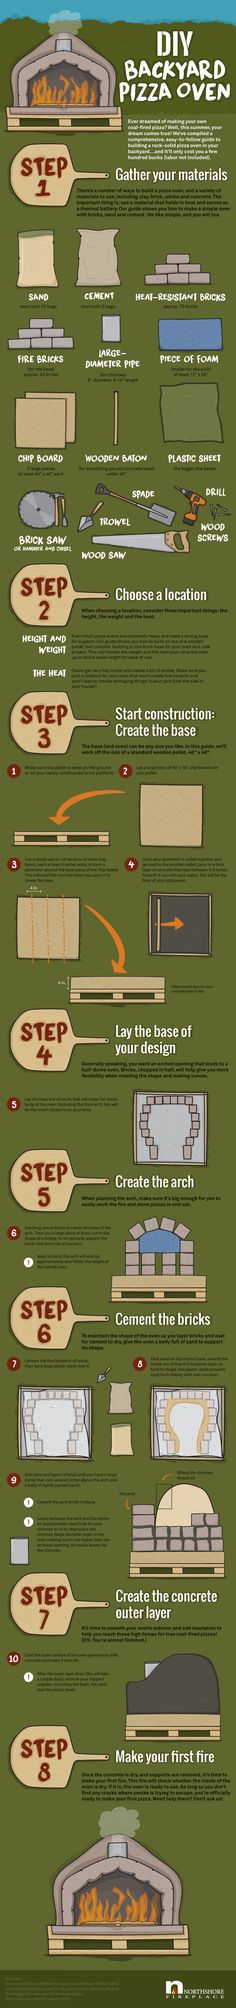 DIY Pizza Oven Hacks #Infographic #Pizza